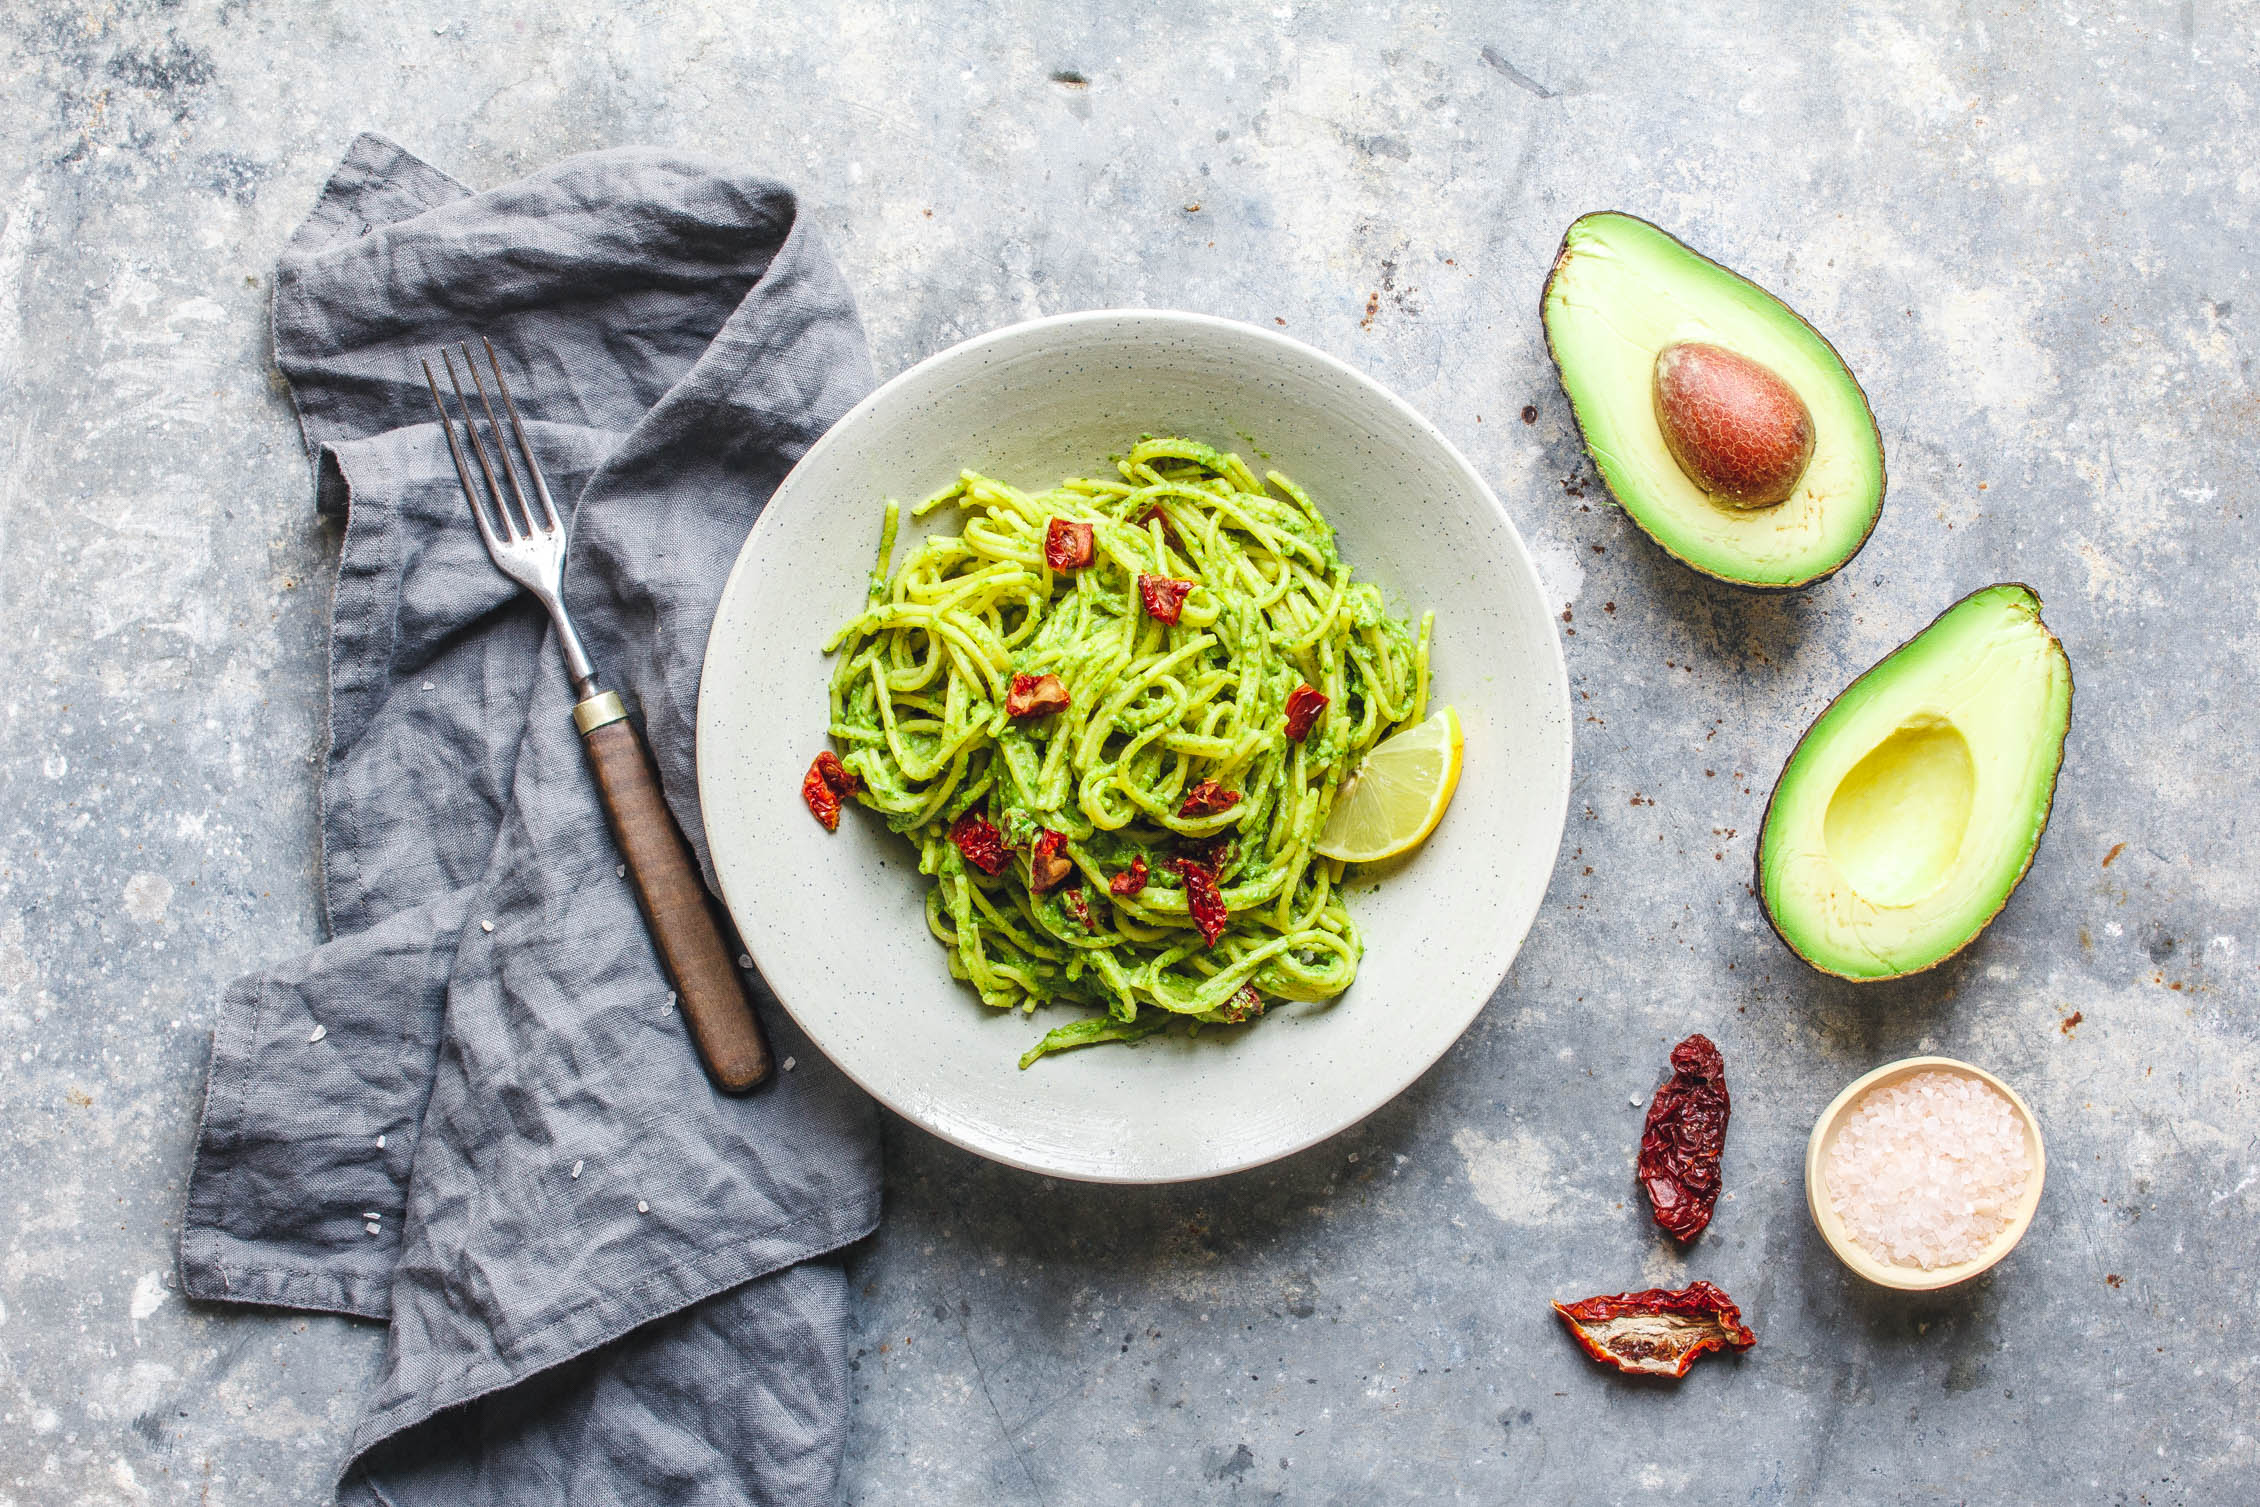 pasta mit avocado gr nkohl pesto und getrockneten tomaten eat this vegan food lifestyle. Black Bedroom Furniture Sets. Home Design Ideas